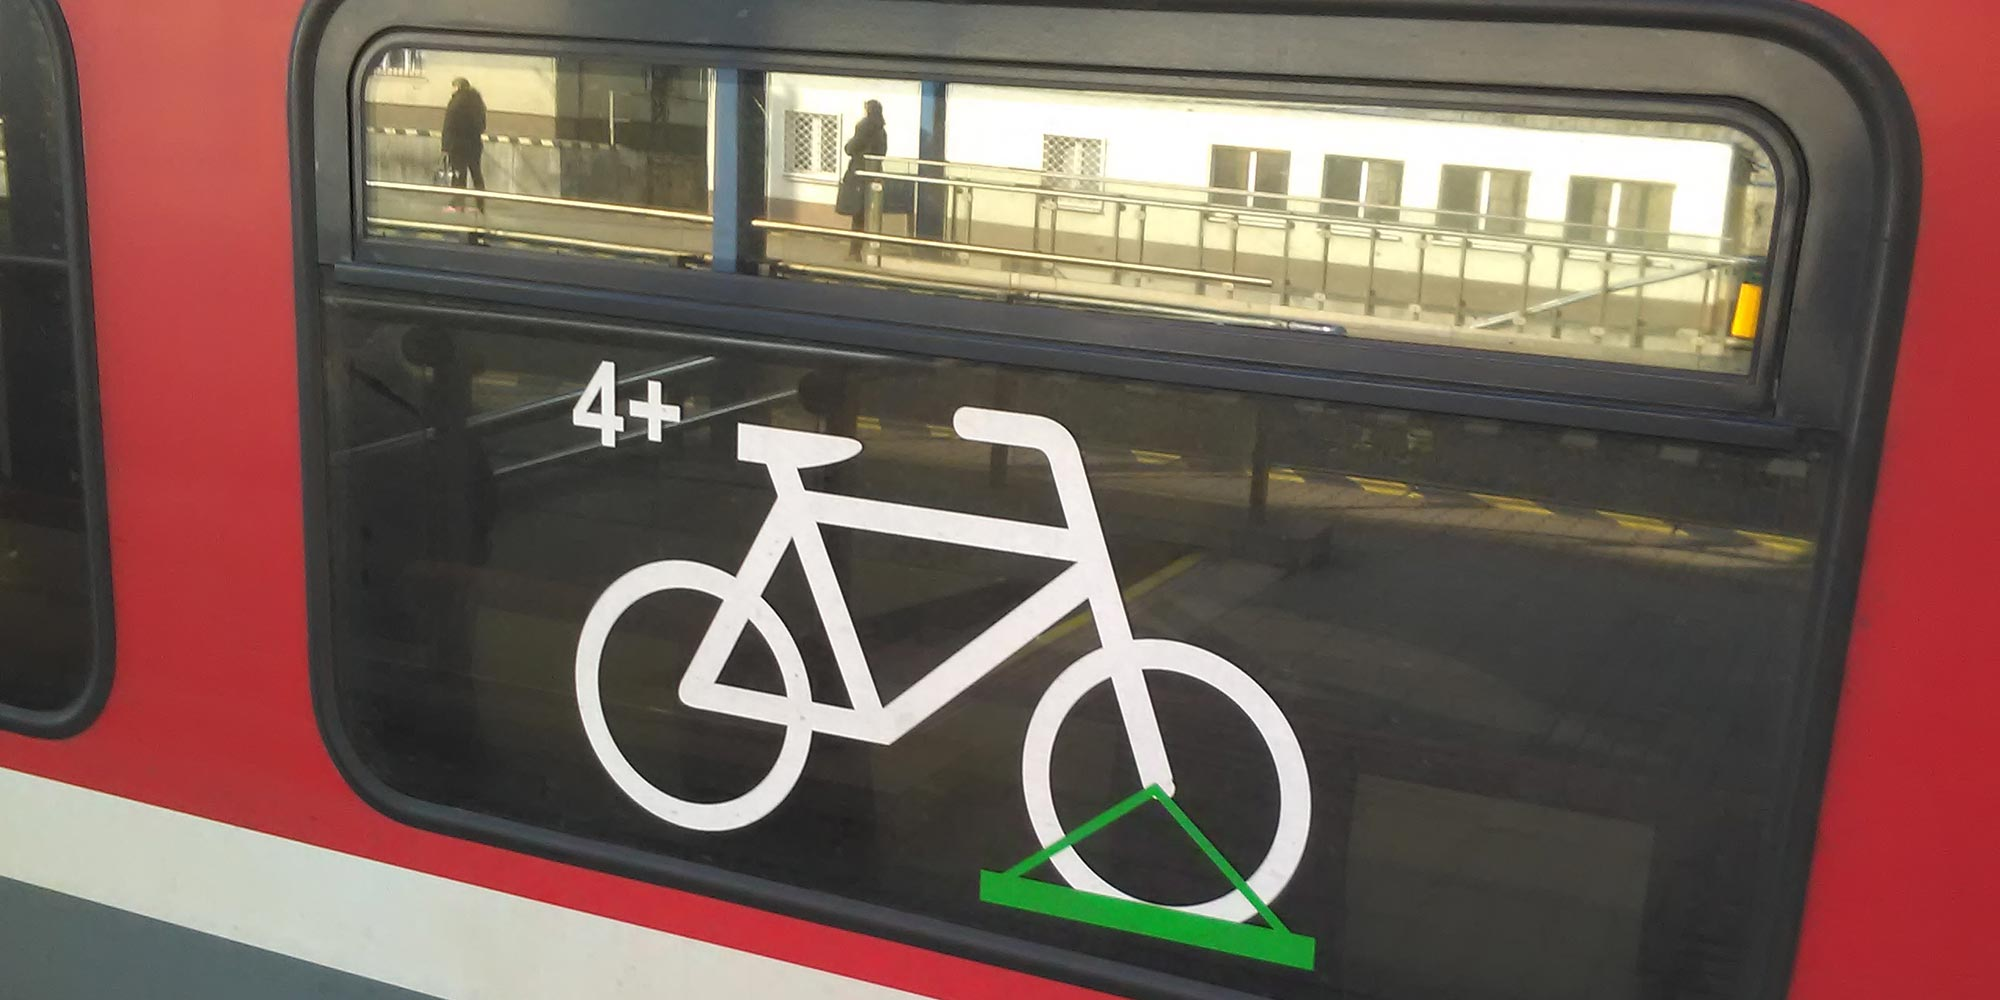 Image: A sign on a train window shows that bike racks are available for commuters.